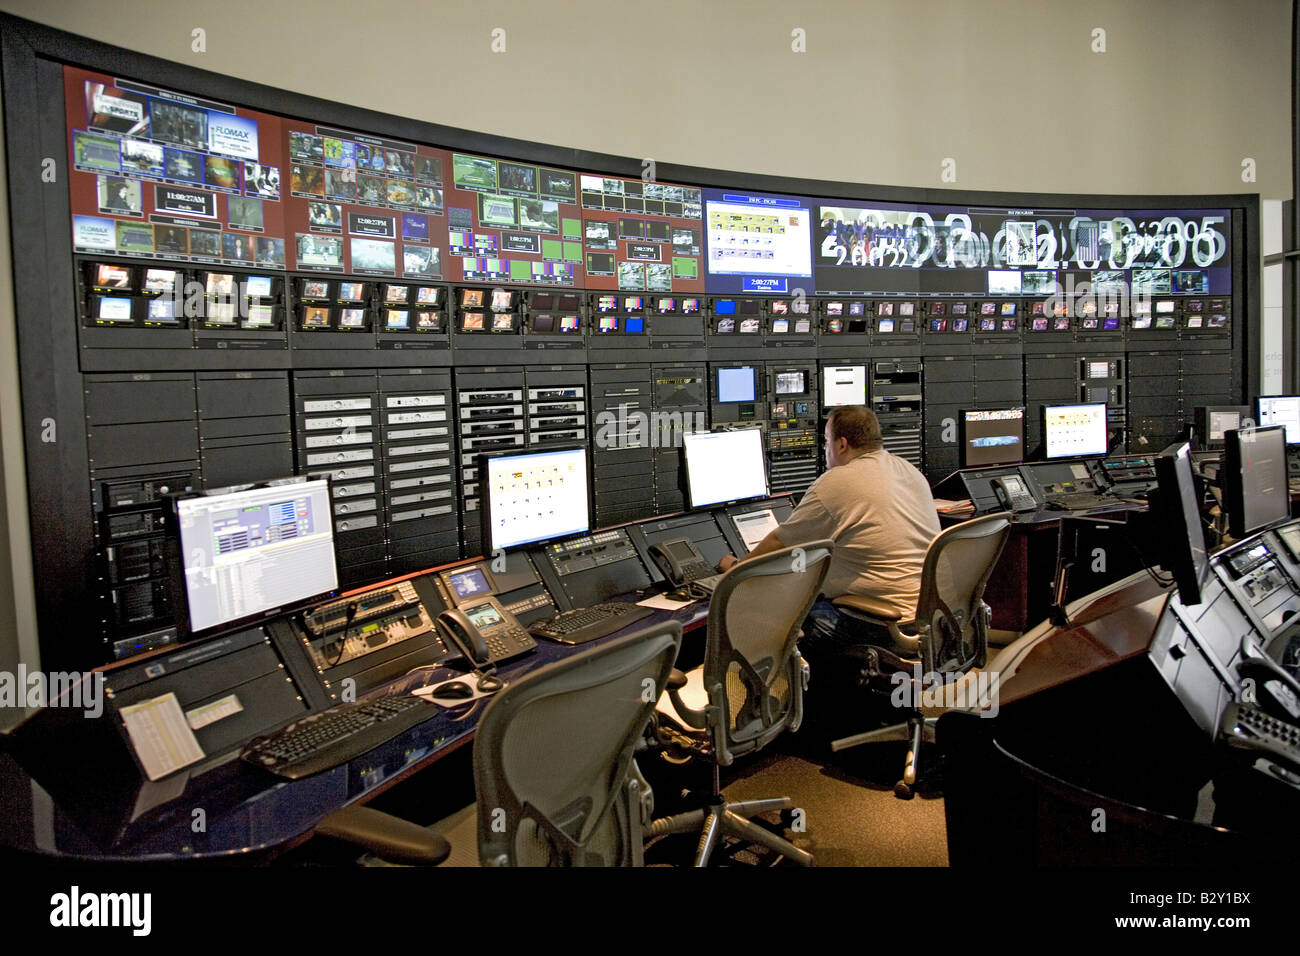 State of the art digital control room with HD monitors displaying worldwide news from Newseum Museum, Washington, - Stock Image